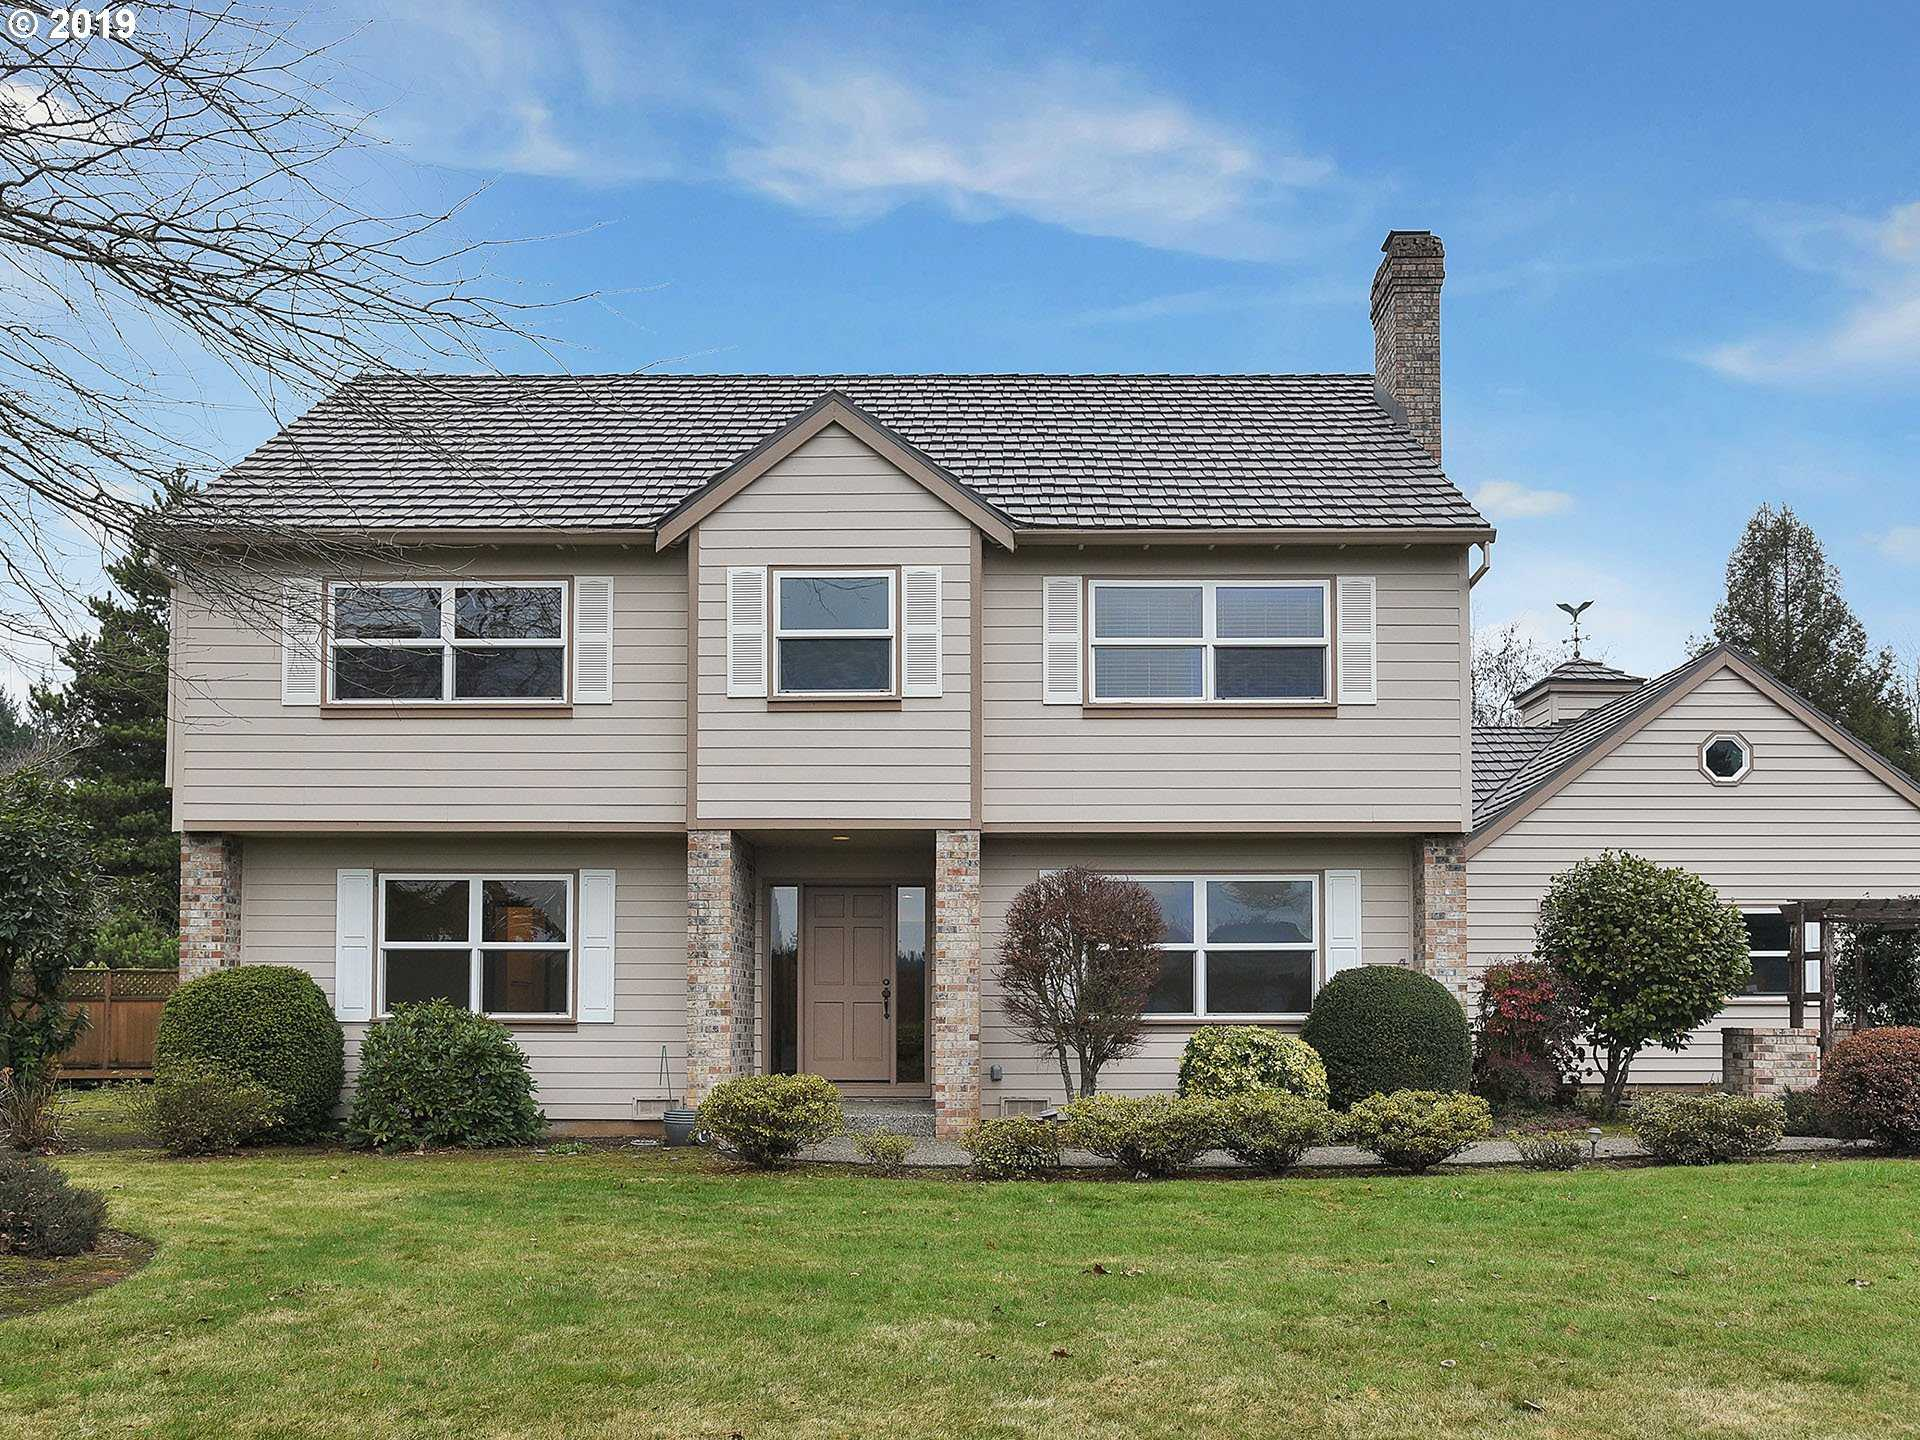 $885,000 - 4Br/3Ba -  for Sale in Tualatin